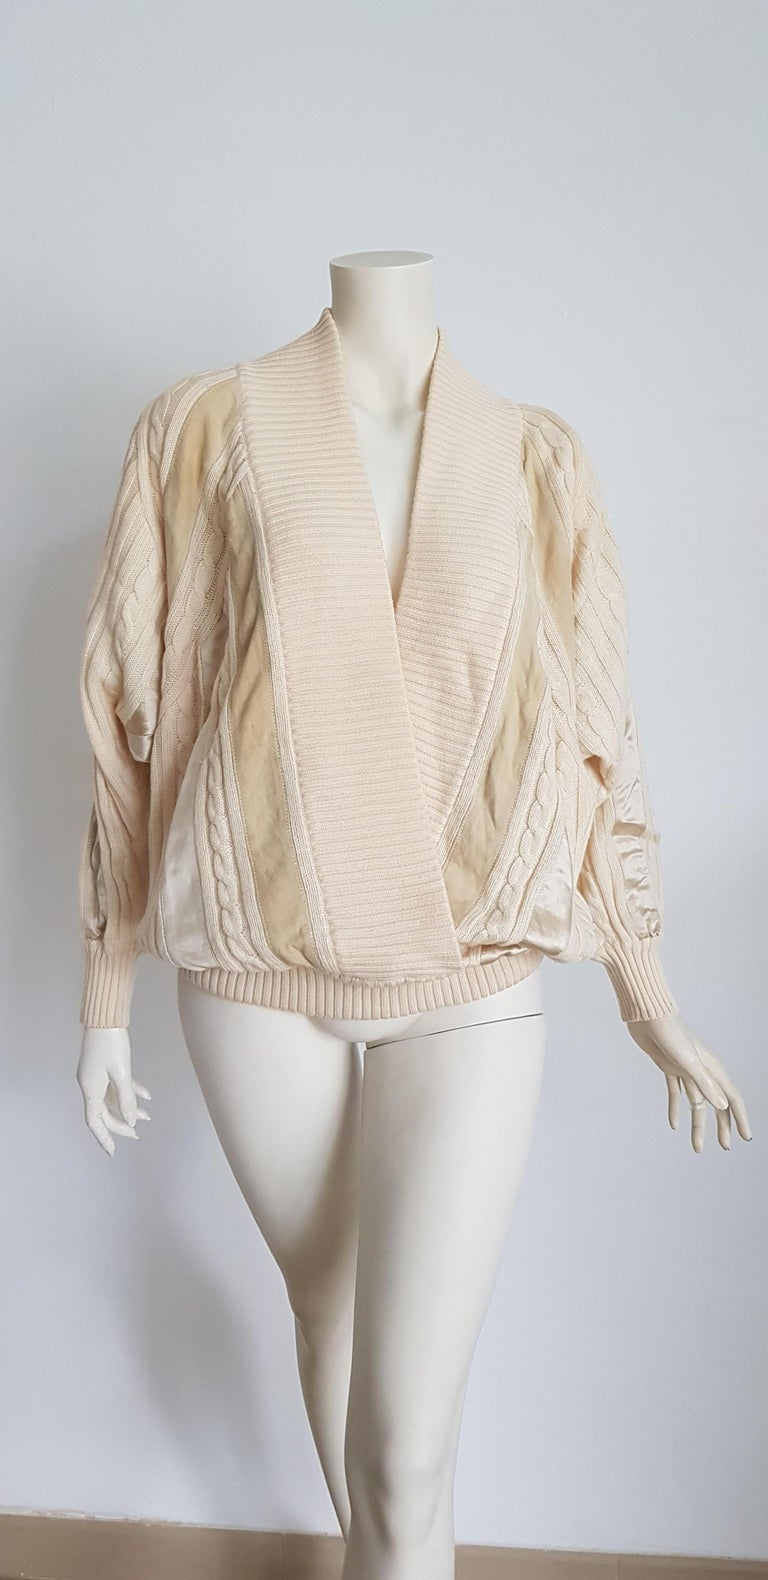 White HERMES white cream wool collection sweater with silk suede strips - Unworn, New For Sale